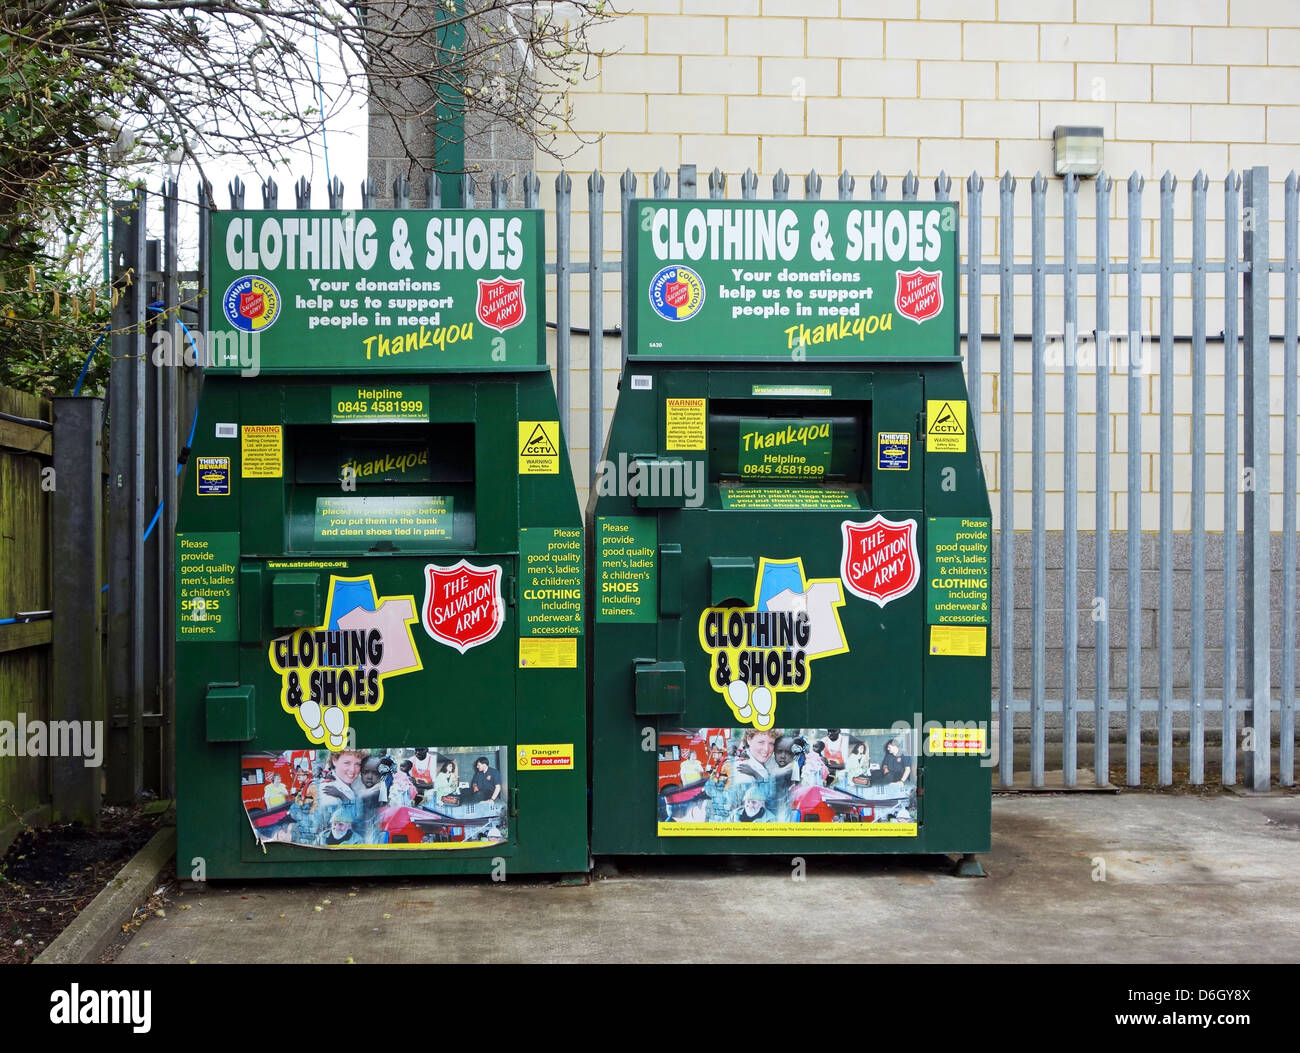 Salvation Army Clothes Recycling Point Stock Photo